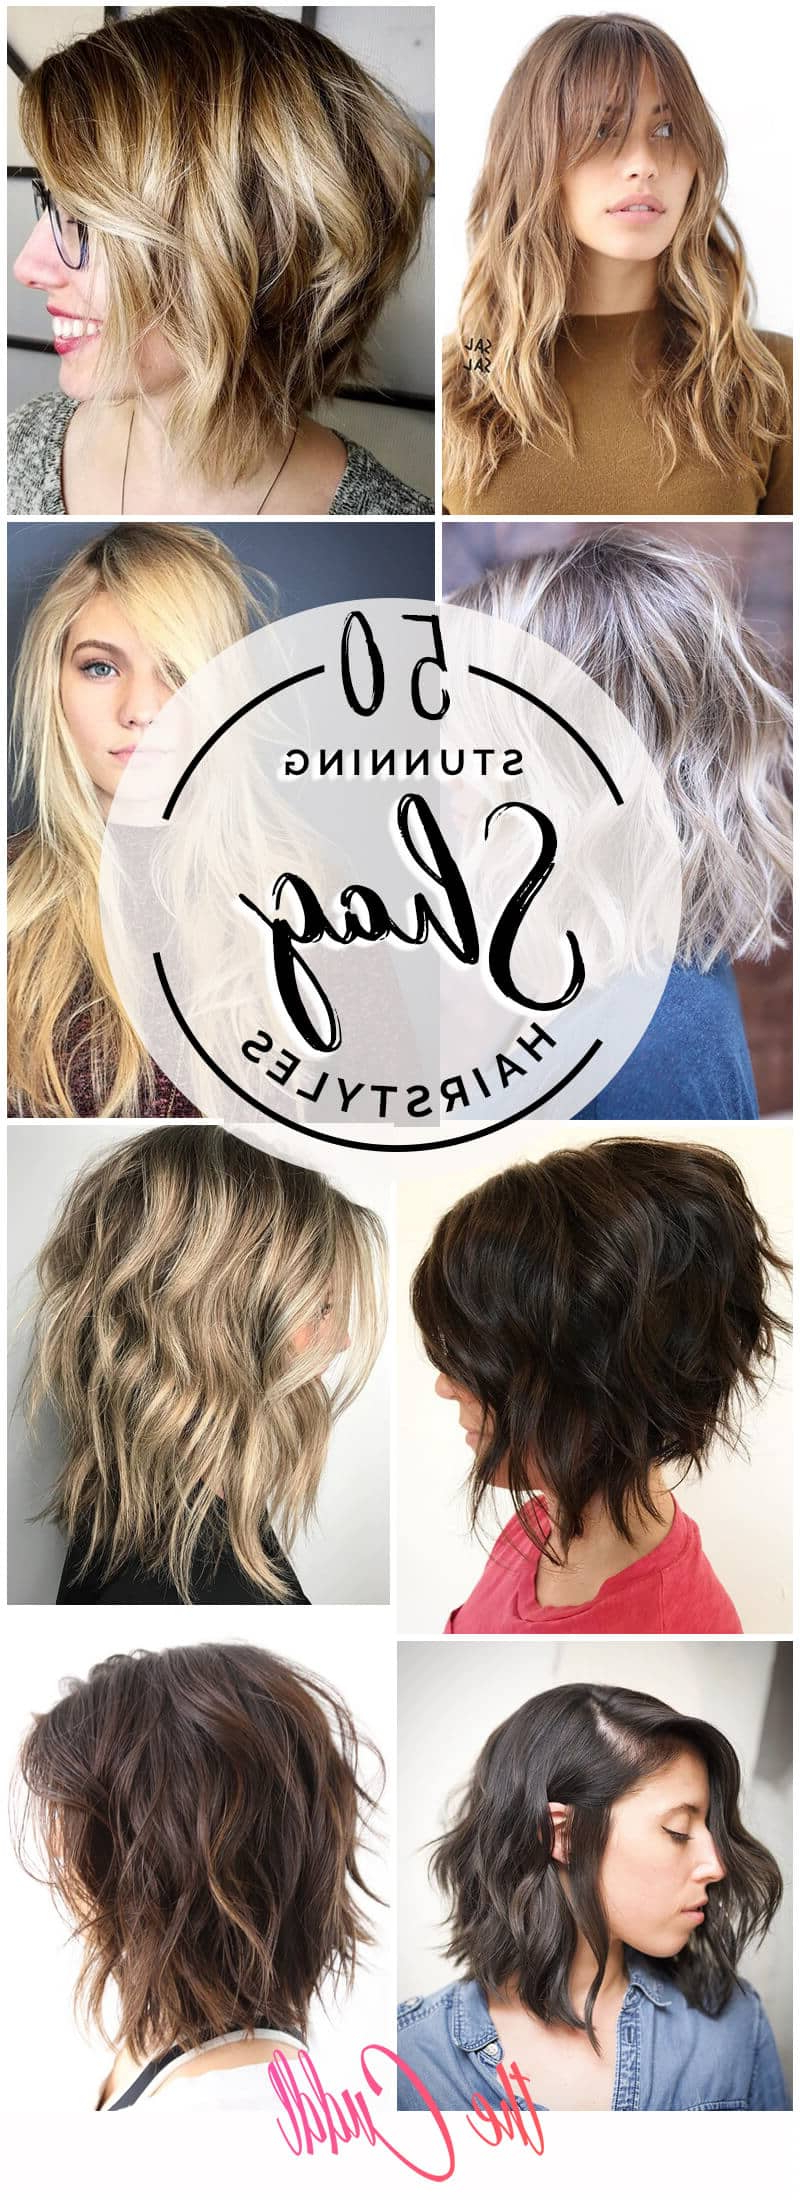 Current Delicate Light Blonde Shag Haircuts Regarding 50 Ways To Wear A Chic Shag Haircut Ideas For A Trendy Look (View 12 of 20)